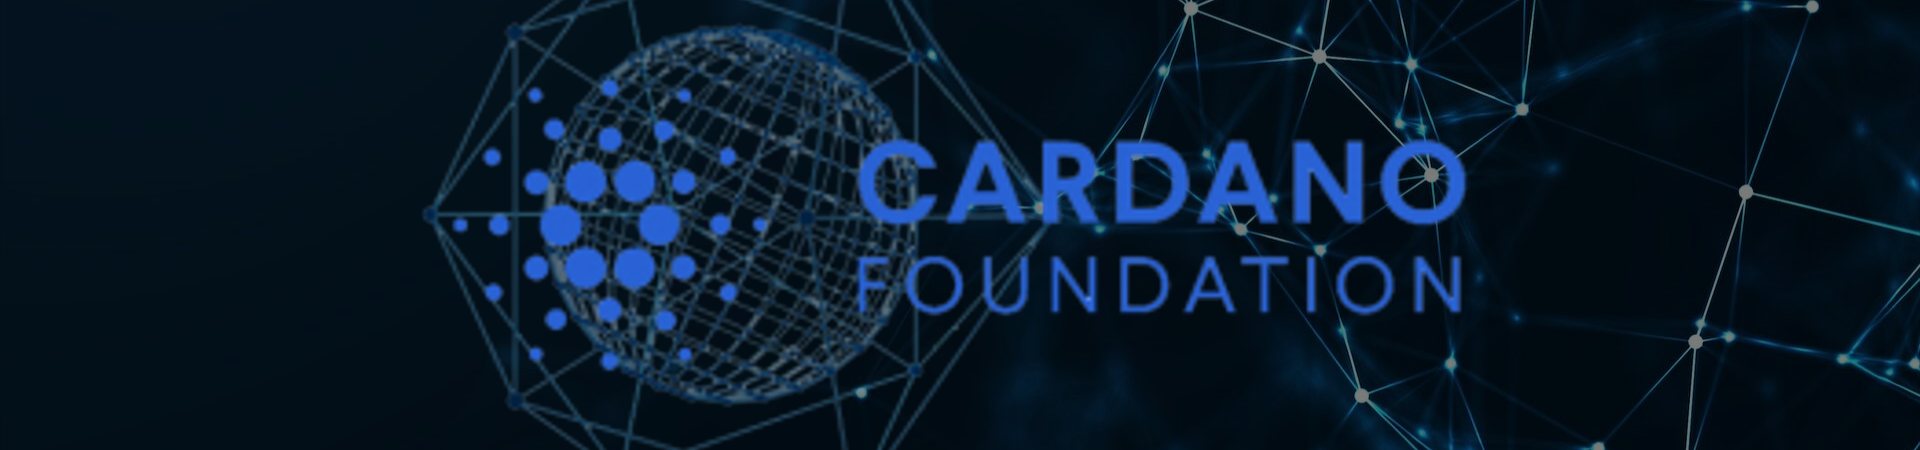 In China, Cardano Foundation Appoints Ryan He to Serve Needs of the Community